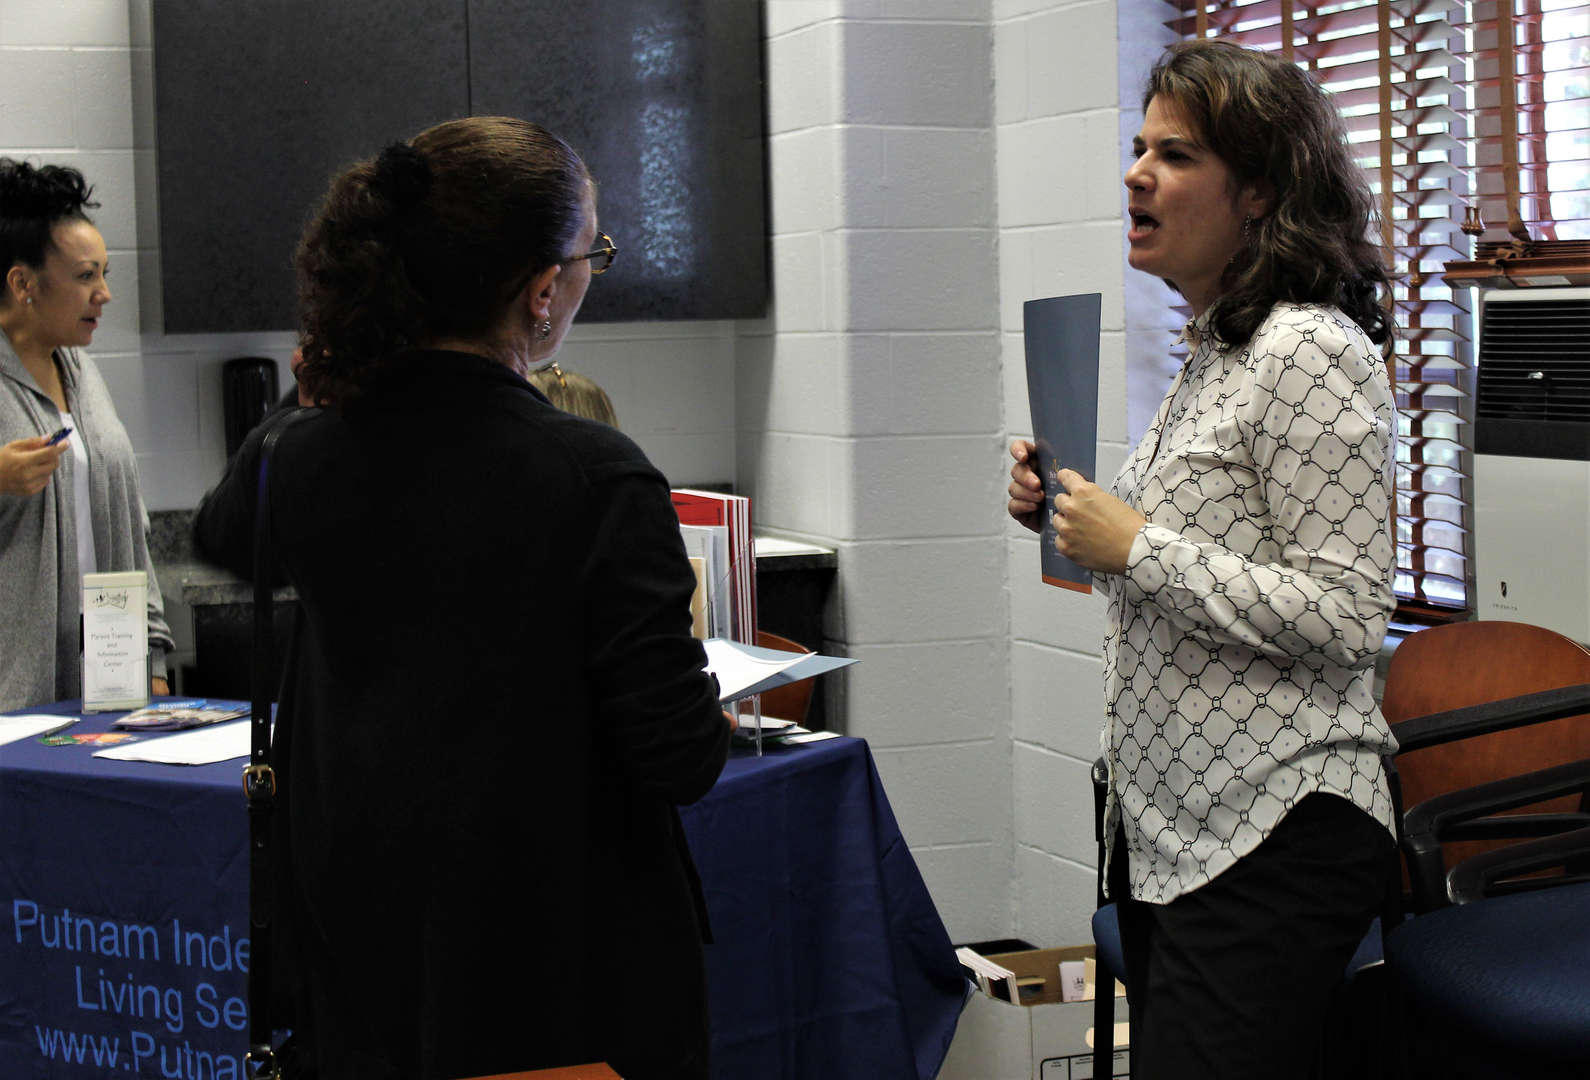 Anne Marie Cellante, president of the SWBOCES SEPTA, speaks with a parent at a recent SEPTA meeting.